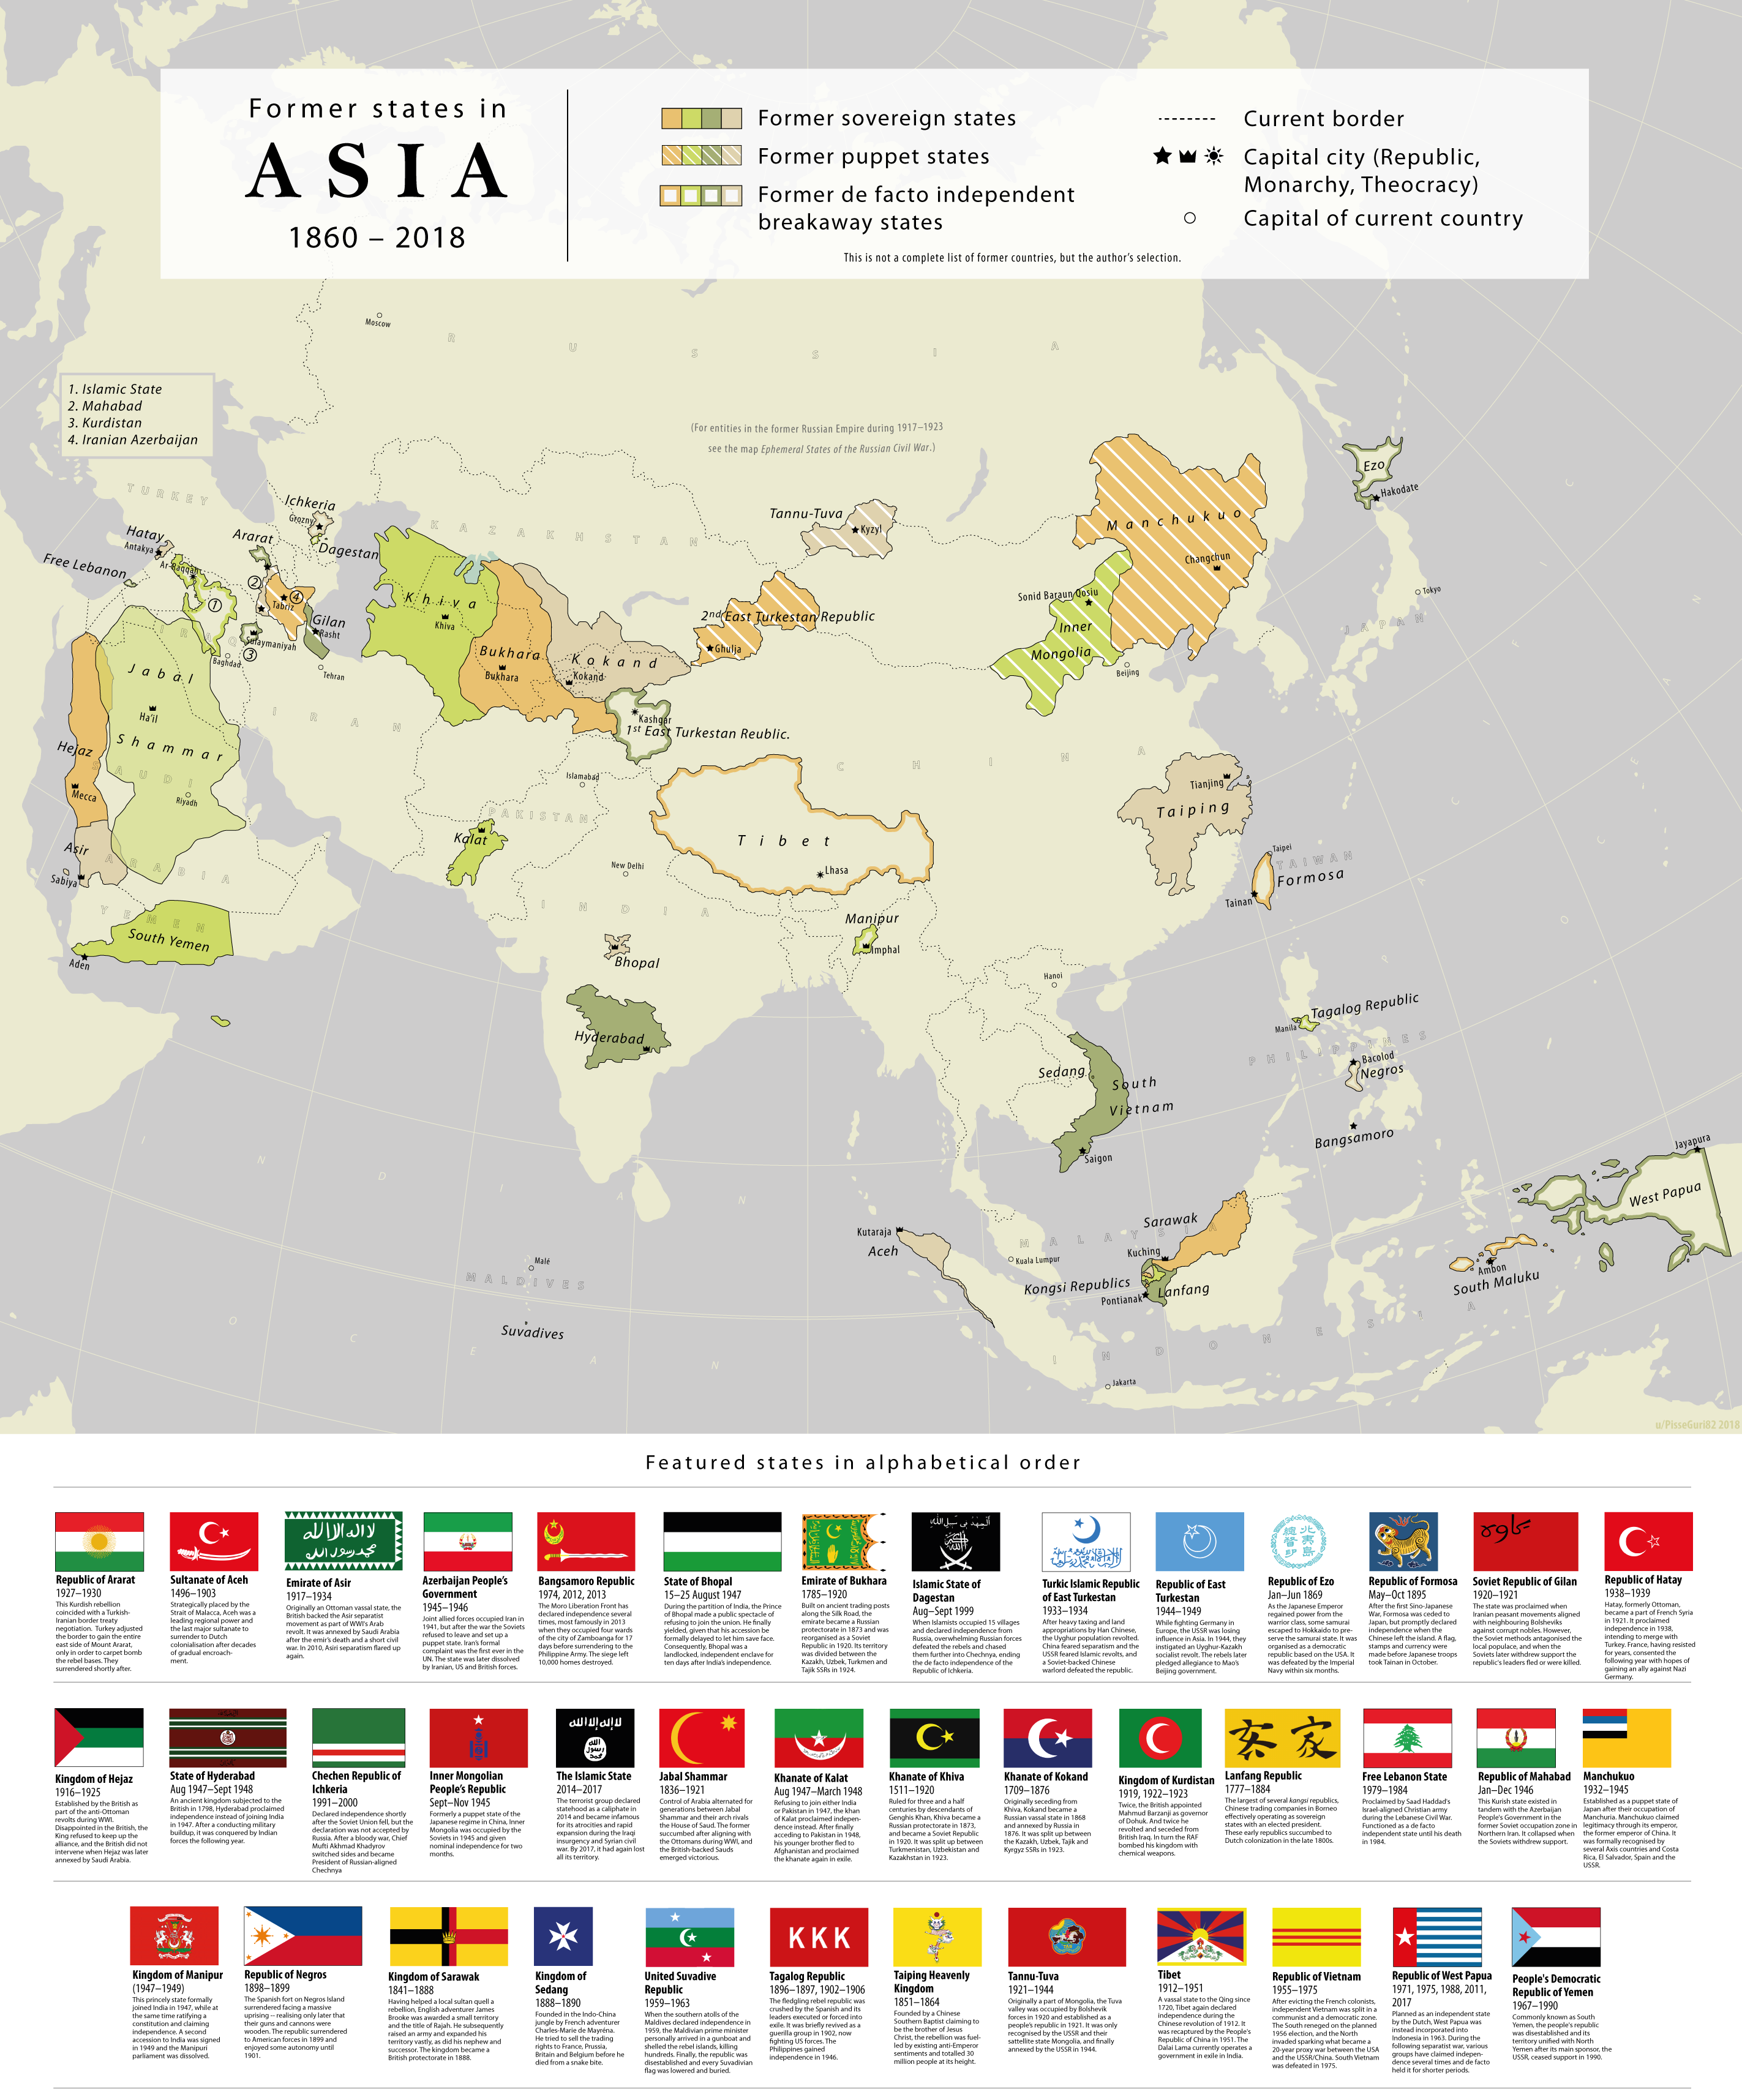 former states in Asia